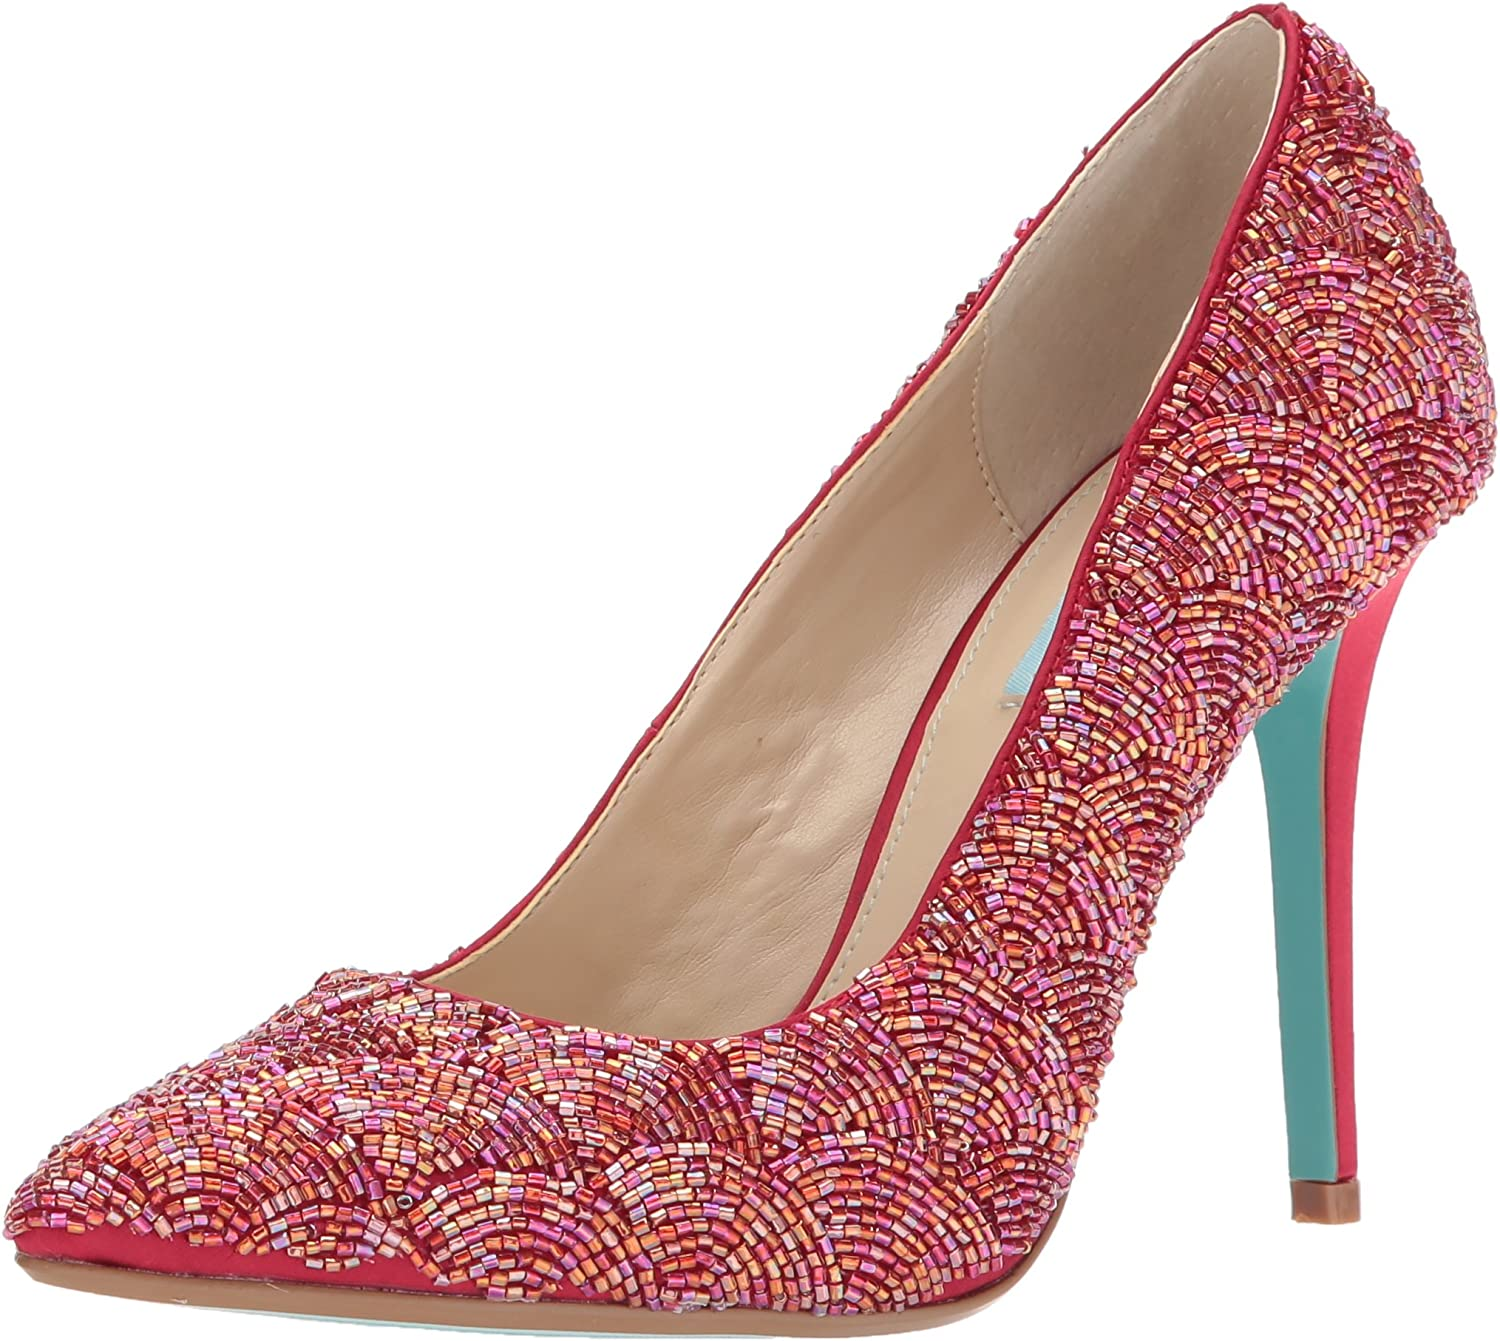 Betsey Johnson bluee Women's SB-Clair Pump